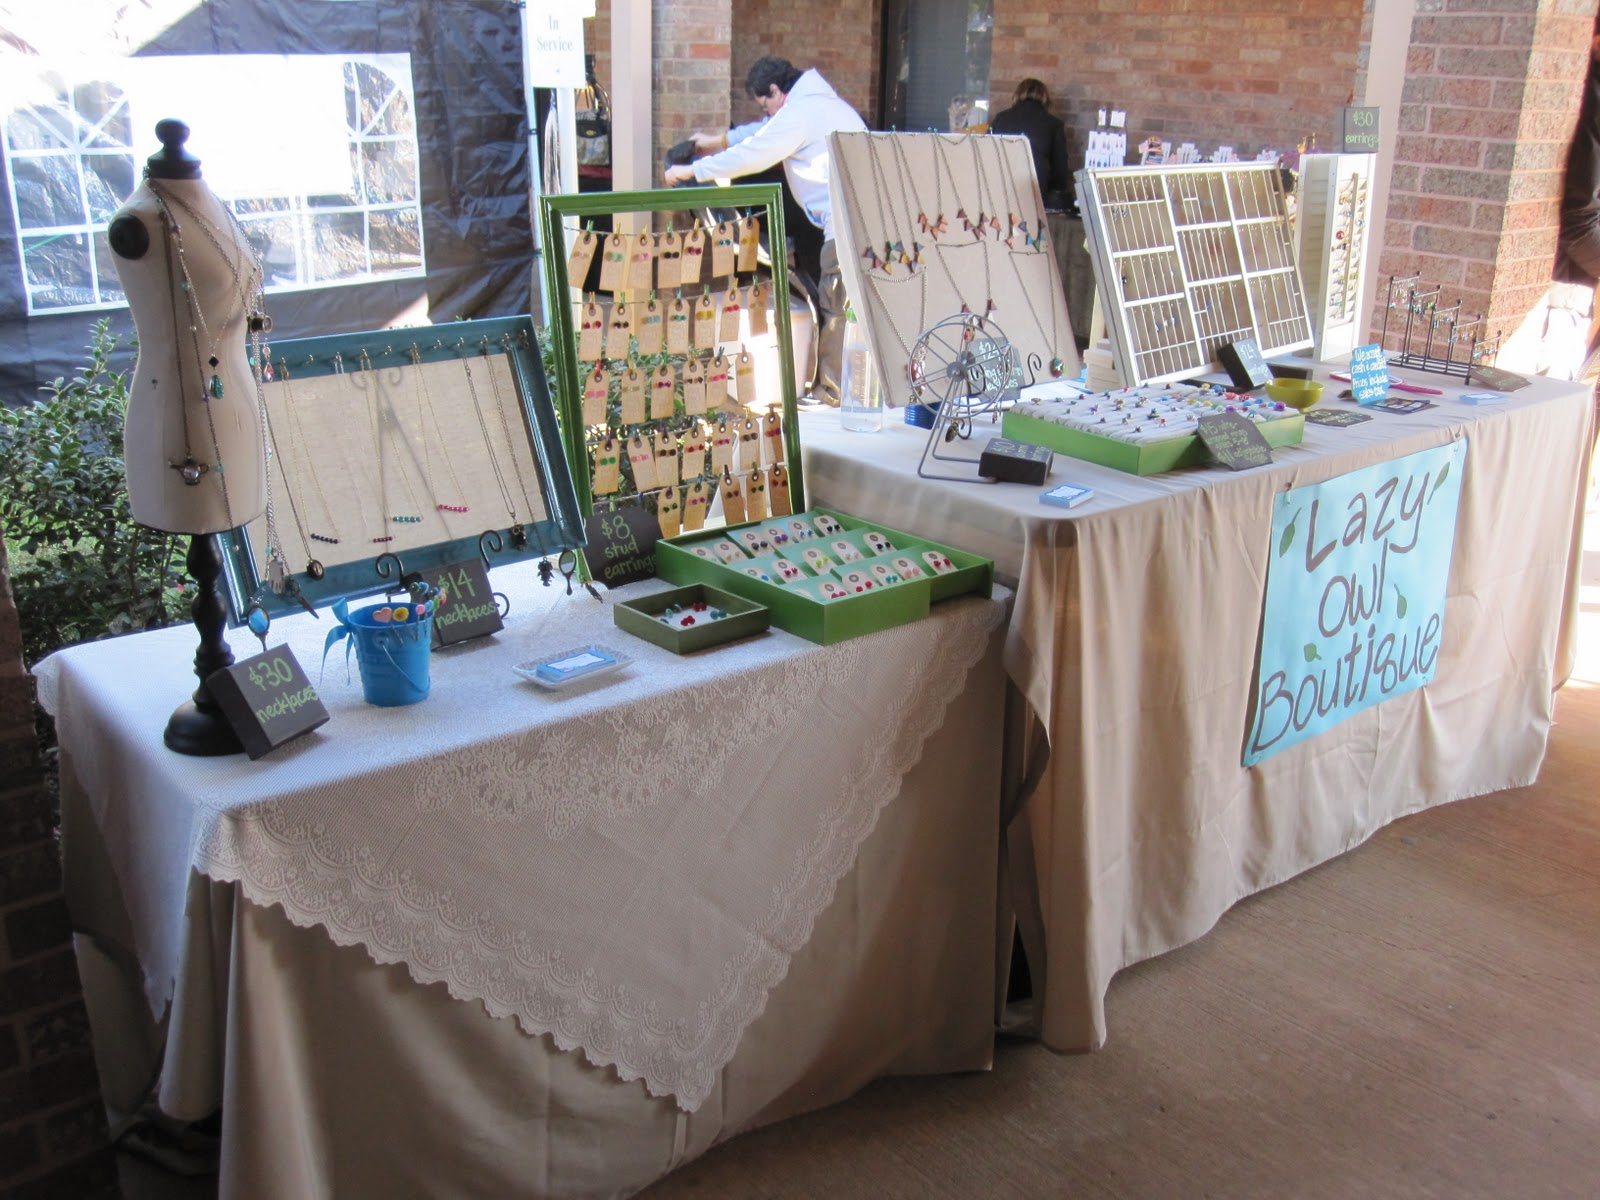 Lazy owl boutique first craft fair experience for How to make a ring display for craft shows